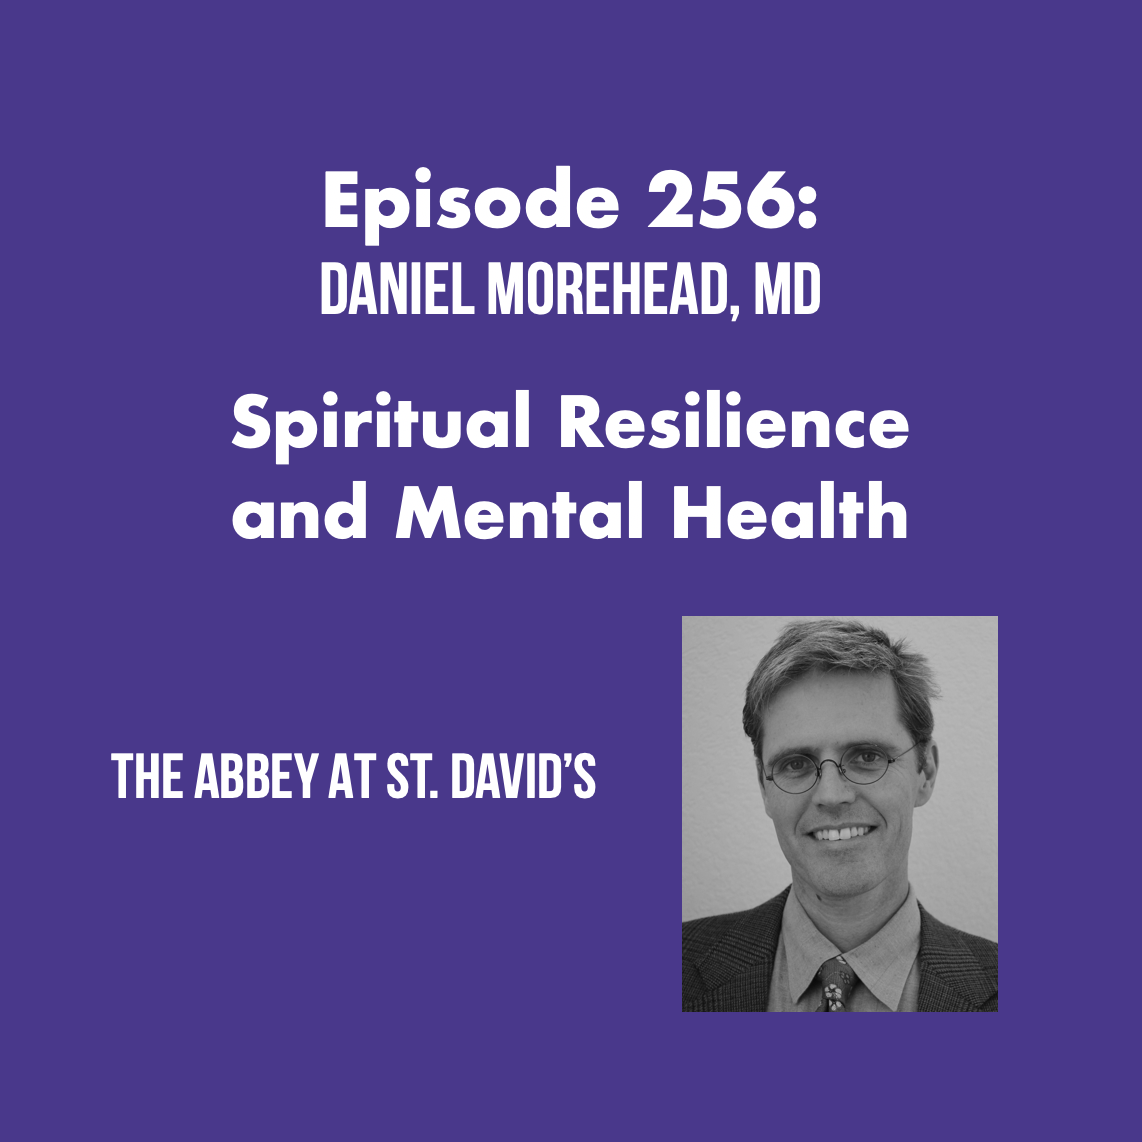 Episode 256: Spiritual Resilience and Mental Health with Daniel Morehead M.D.